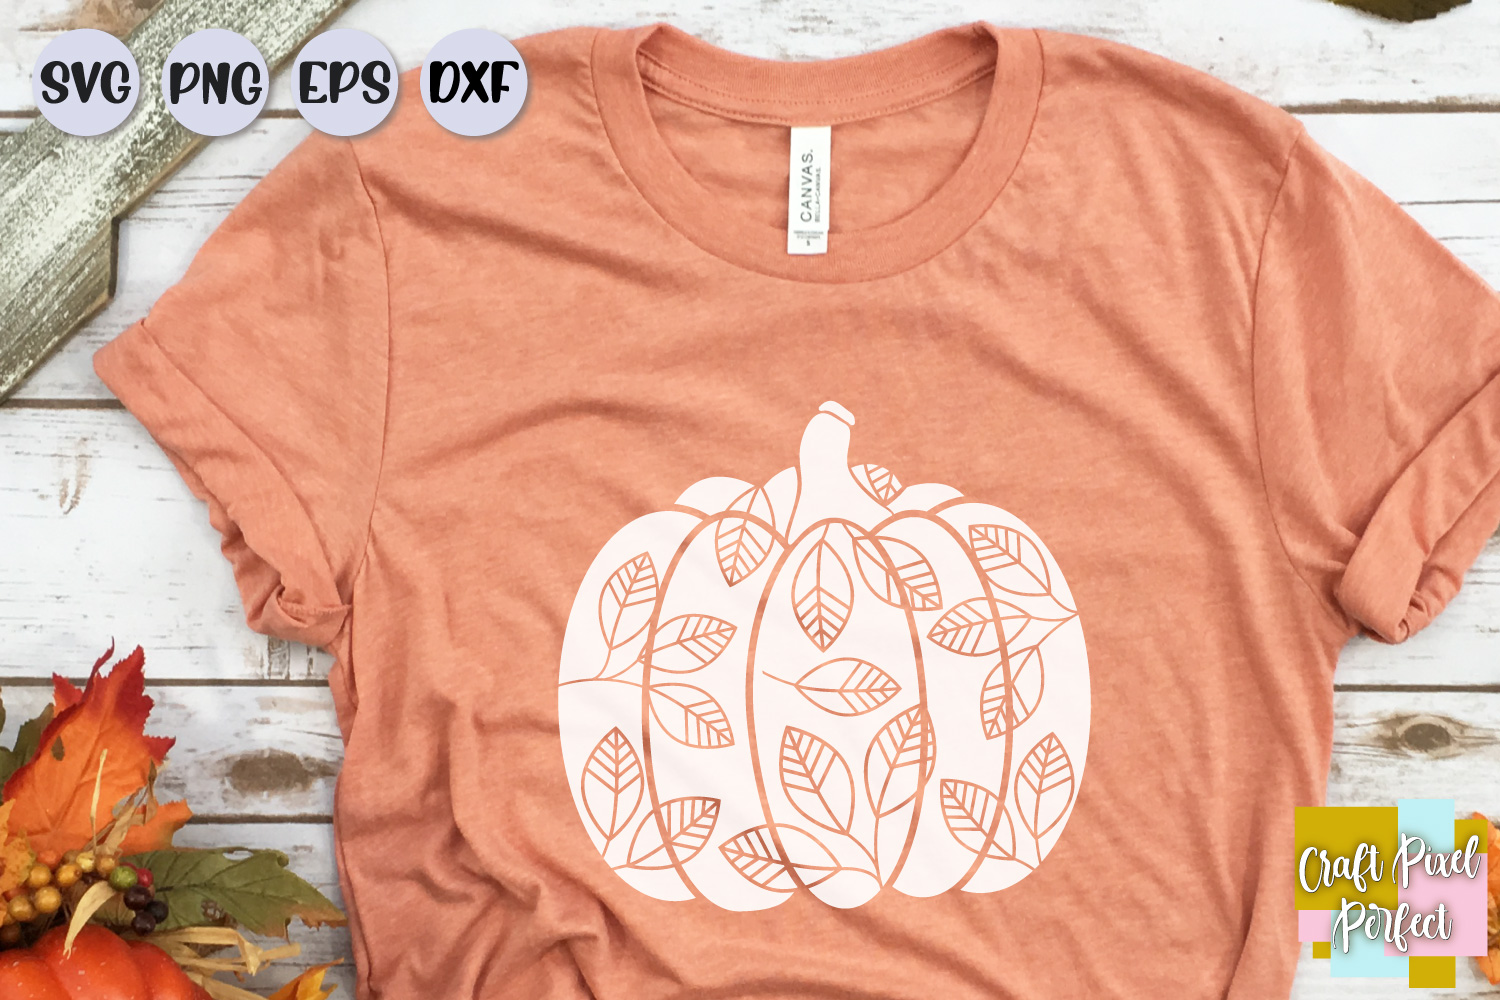 Pumpkin Spice Svg, Fall Sayings Svg, I Hate Pumpkin Spice example image 2